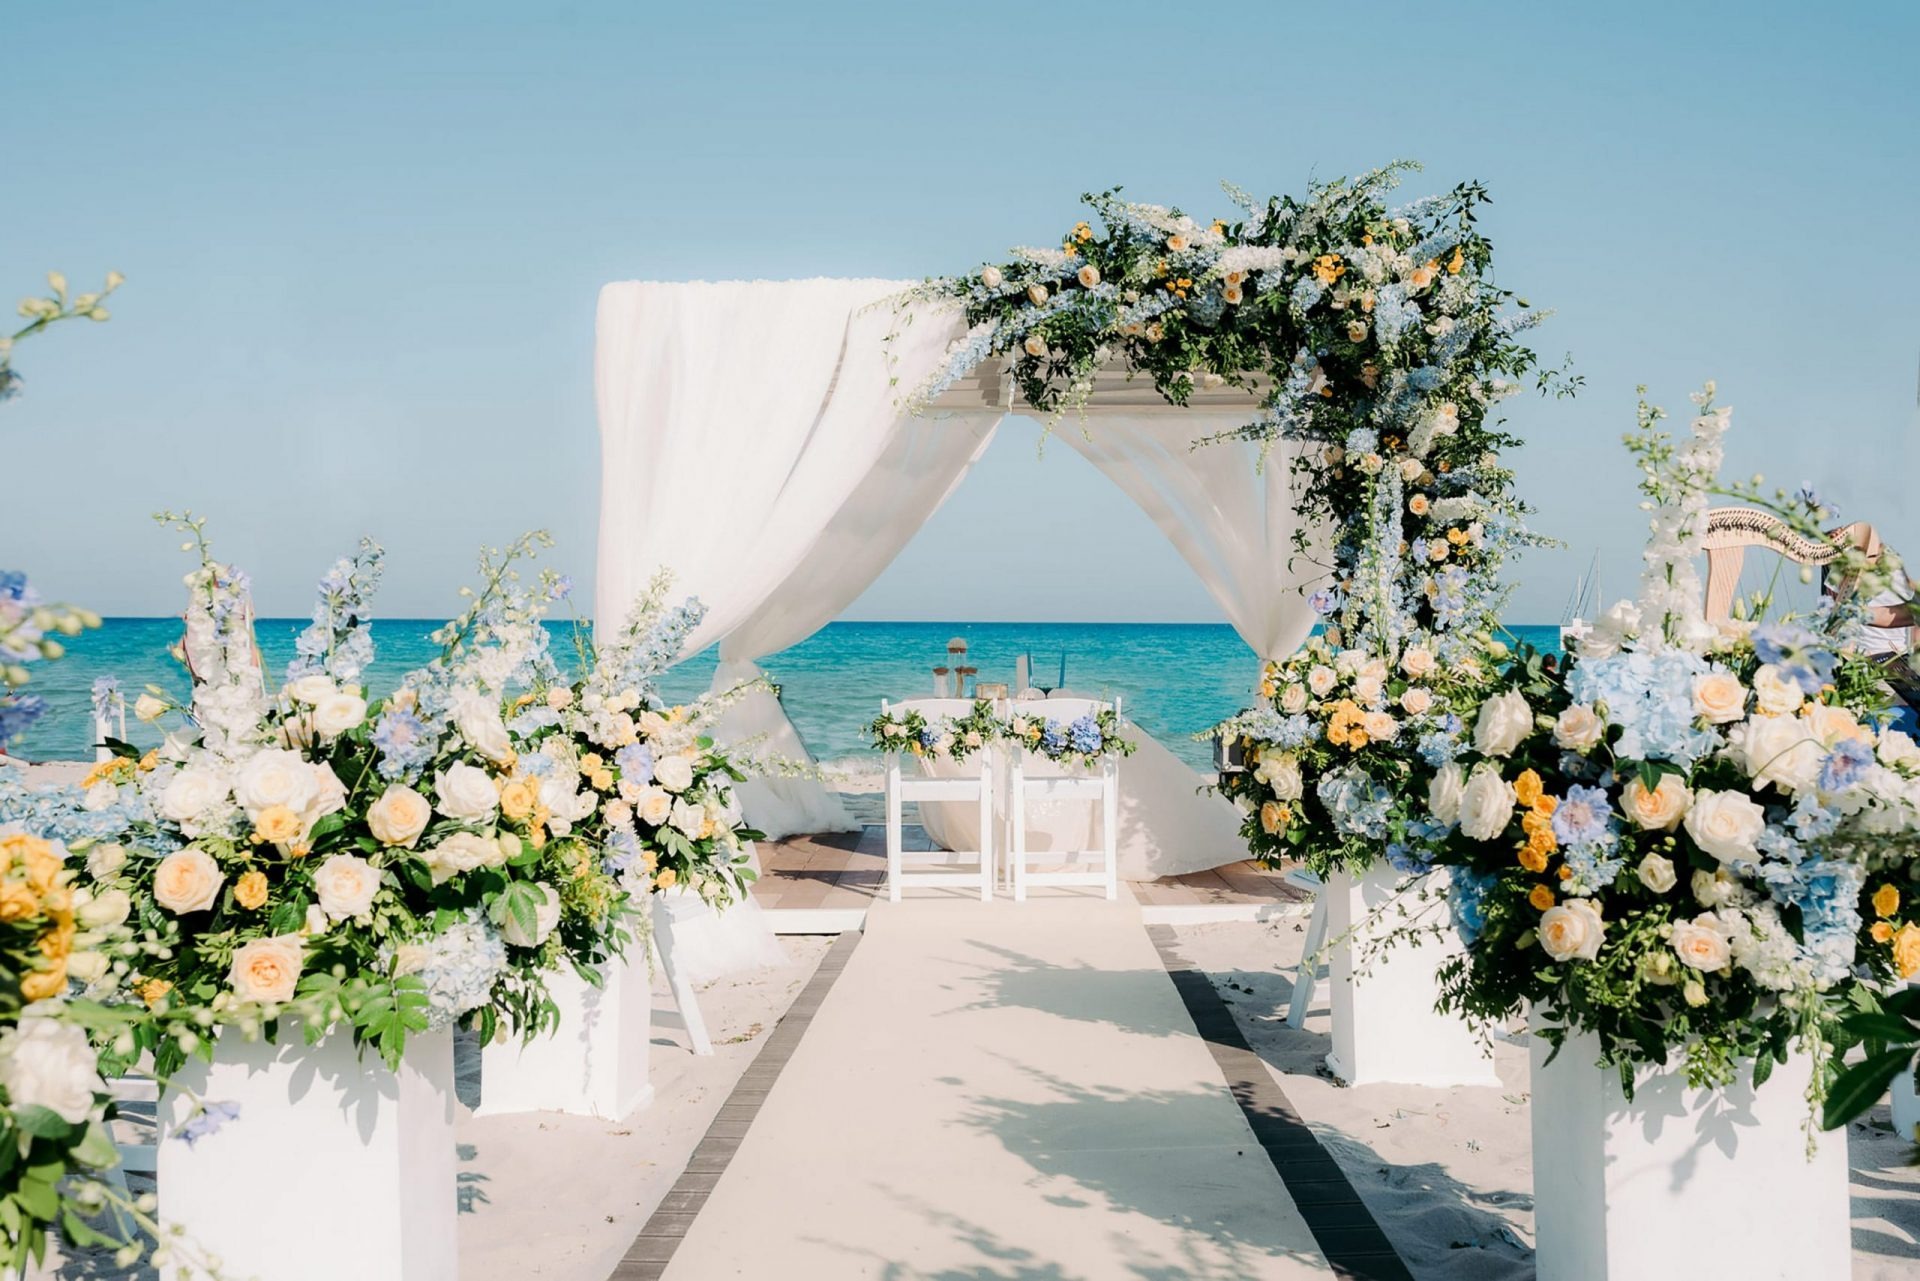 Linda and Enrico, pastel yellow and blue wedding ceremony on the beach